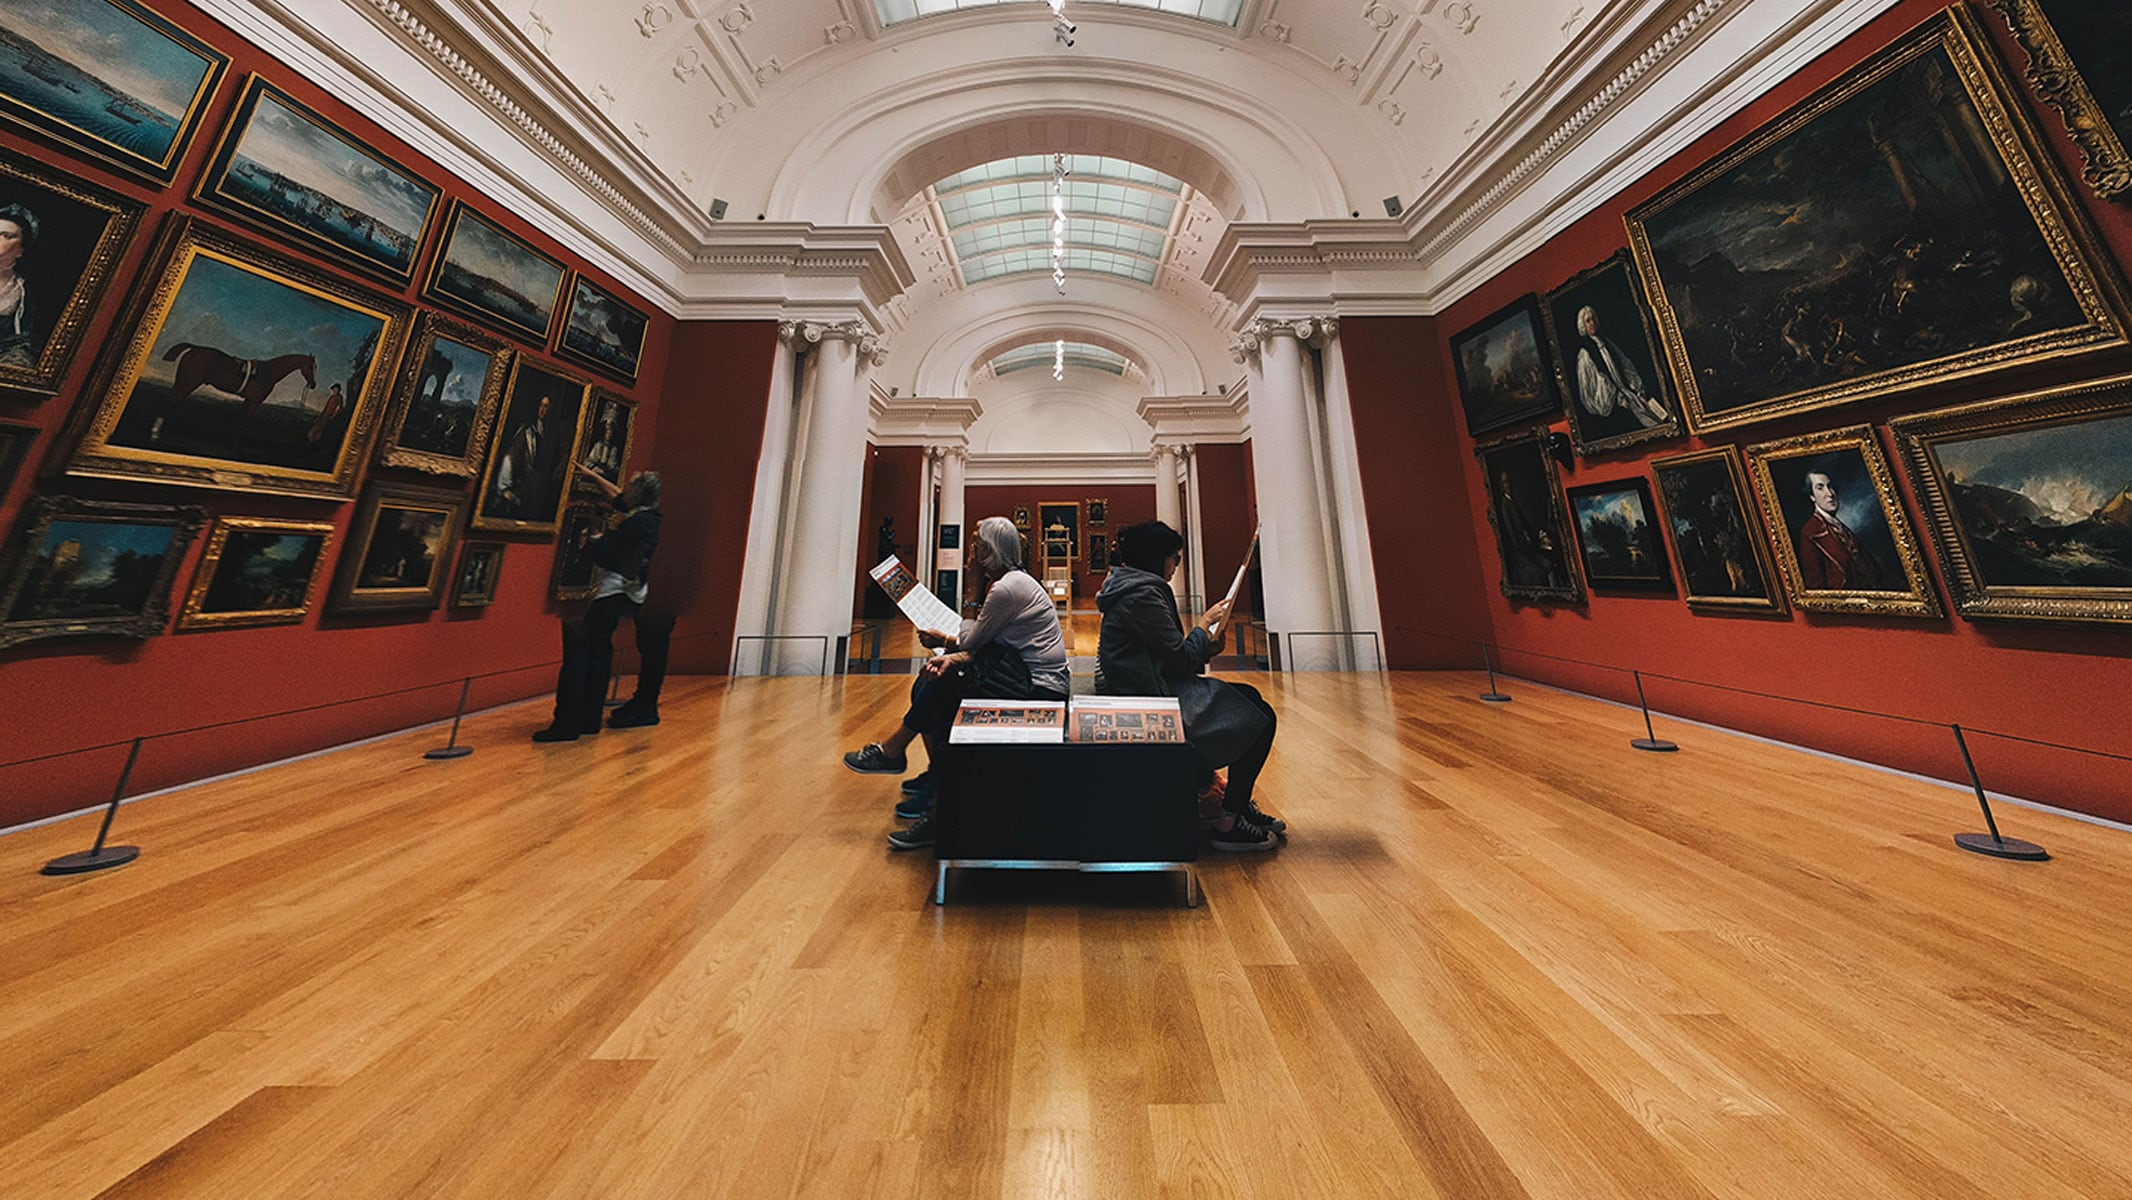 Sitting in Gallery